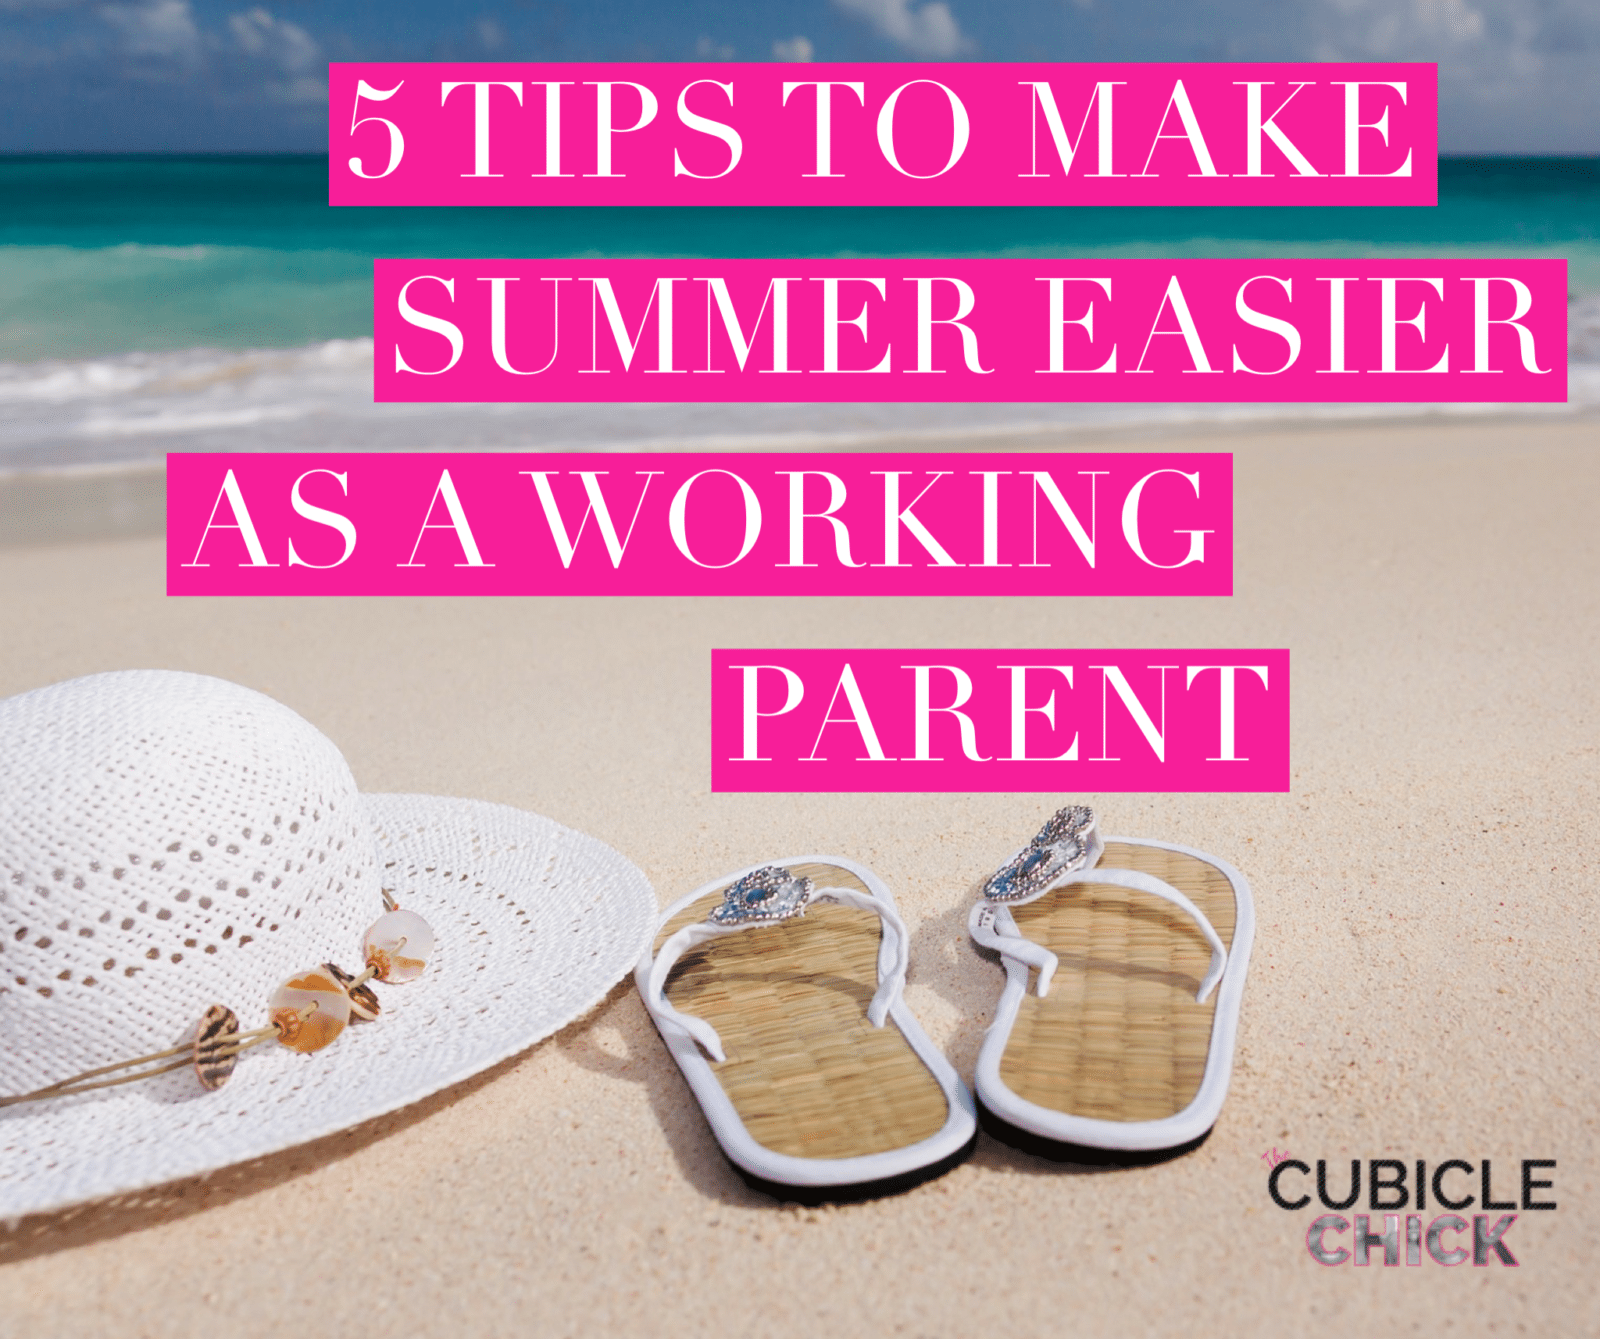 5 Tips to Make Summer Easier as A Working Parent